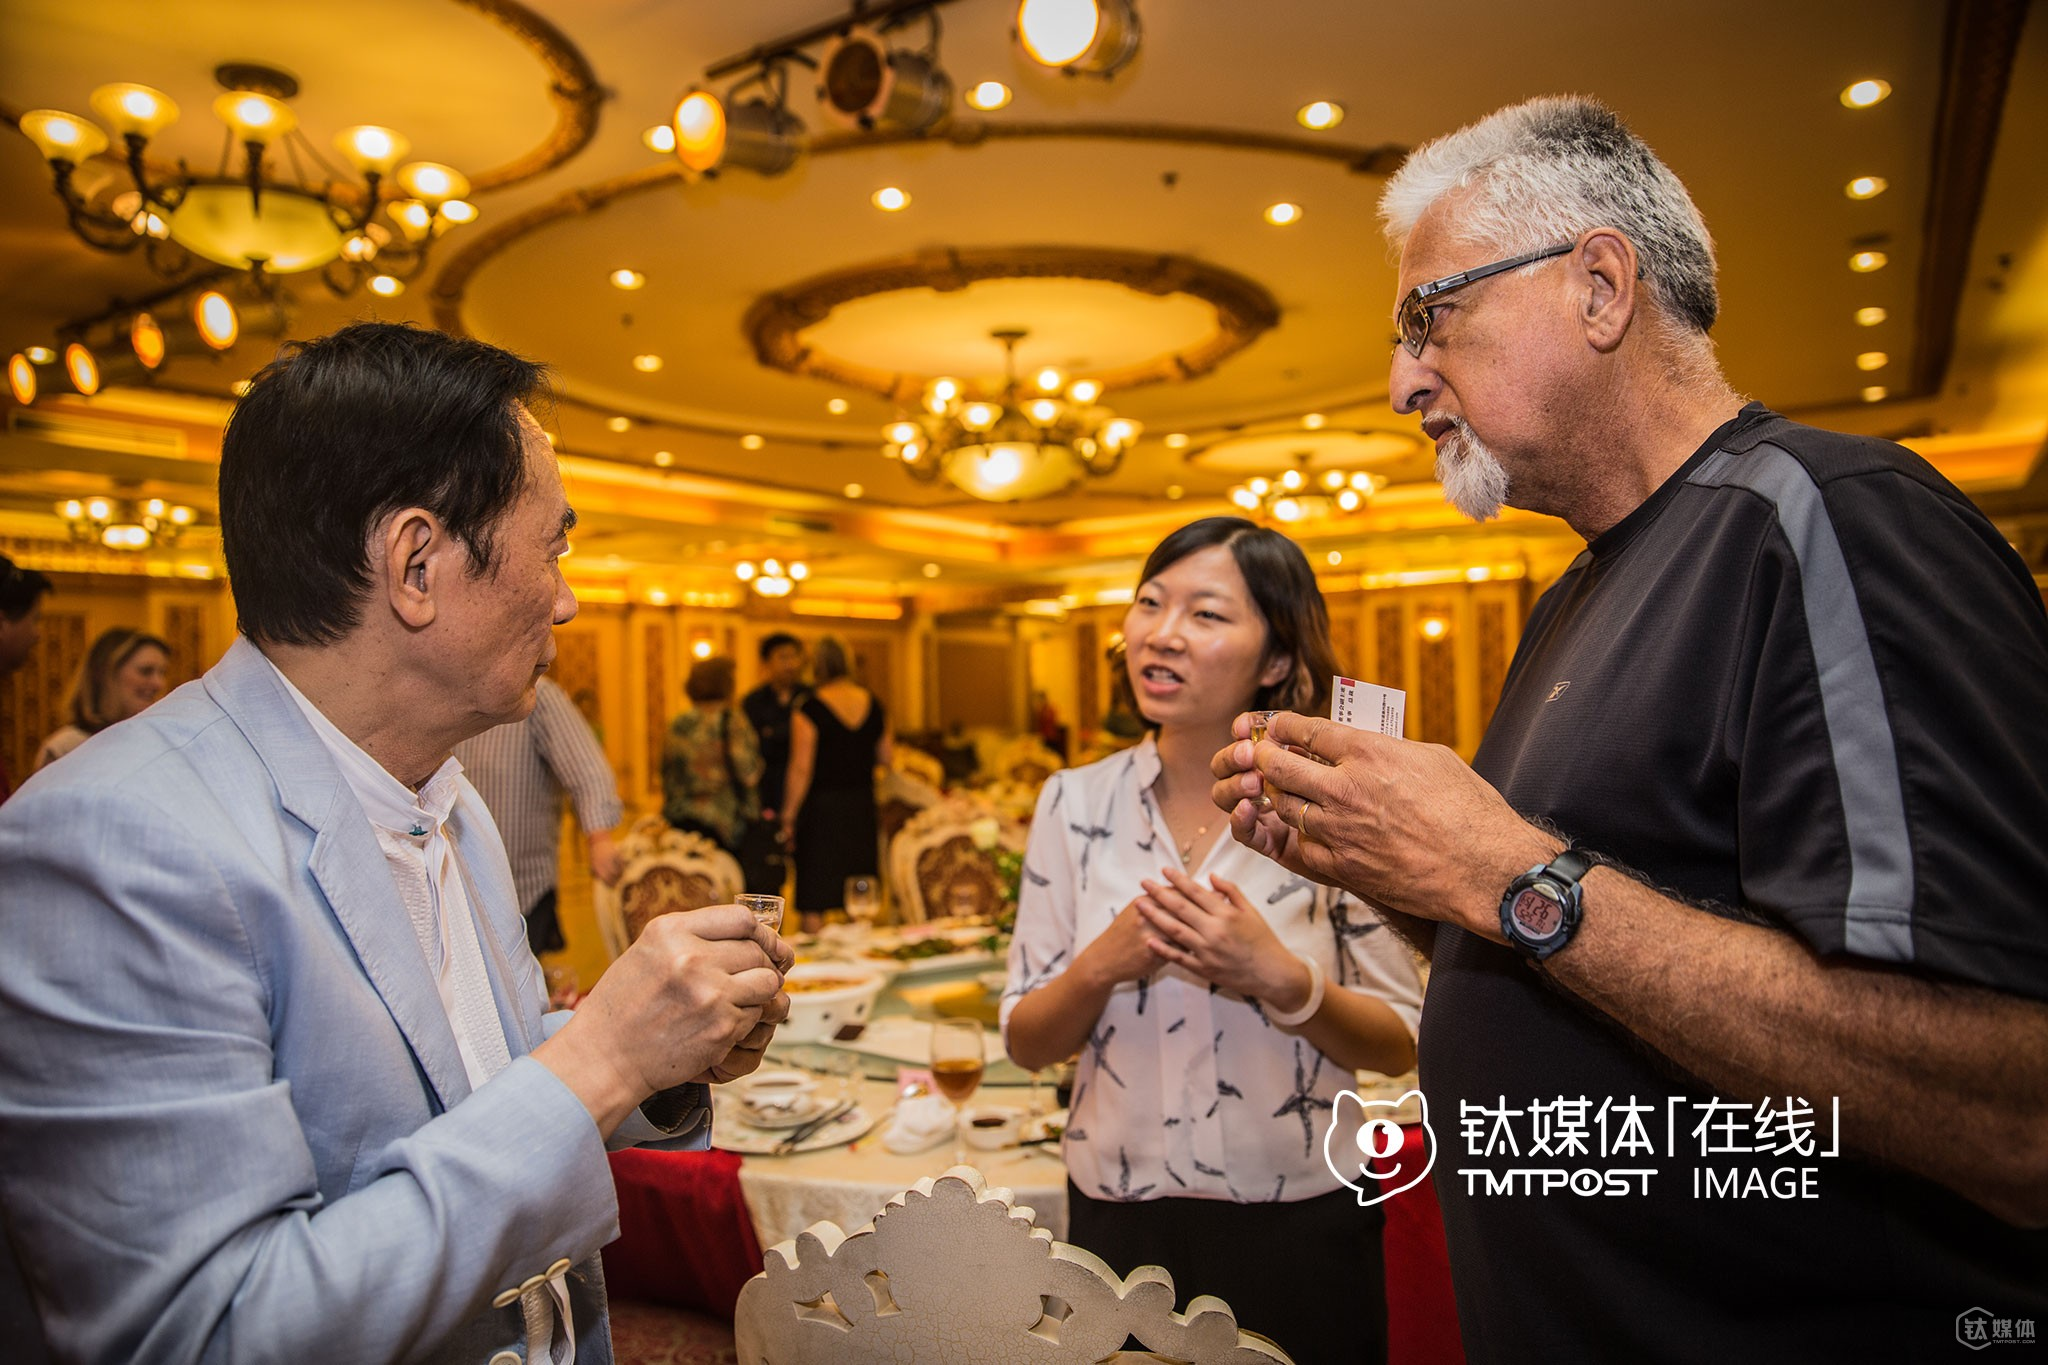 """It was the evening of May, 24th, Yubei District of Chongqing. A local investor invited the delegation to a dinner party and became the the focus. After proposing a toast with a passionate speech on """"Chinese Dream"""", Rick Kowalczyk, mayor of Half Moon Bay first hugged him and joined the toast. He was followed by Eduardo Martinez, mayor of Richmond, who approached the local investor and gulped the """"Chinese spirits"""". """"I want to find some investors for infrastructure sector in my city,"""" said Mayor Kowalczyk. He was a veteran teacher, and spent half his life teaching in elementary schools. After retirement, he was still keen in public service, so he was encouraged by people around to run for public office and won the election."""